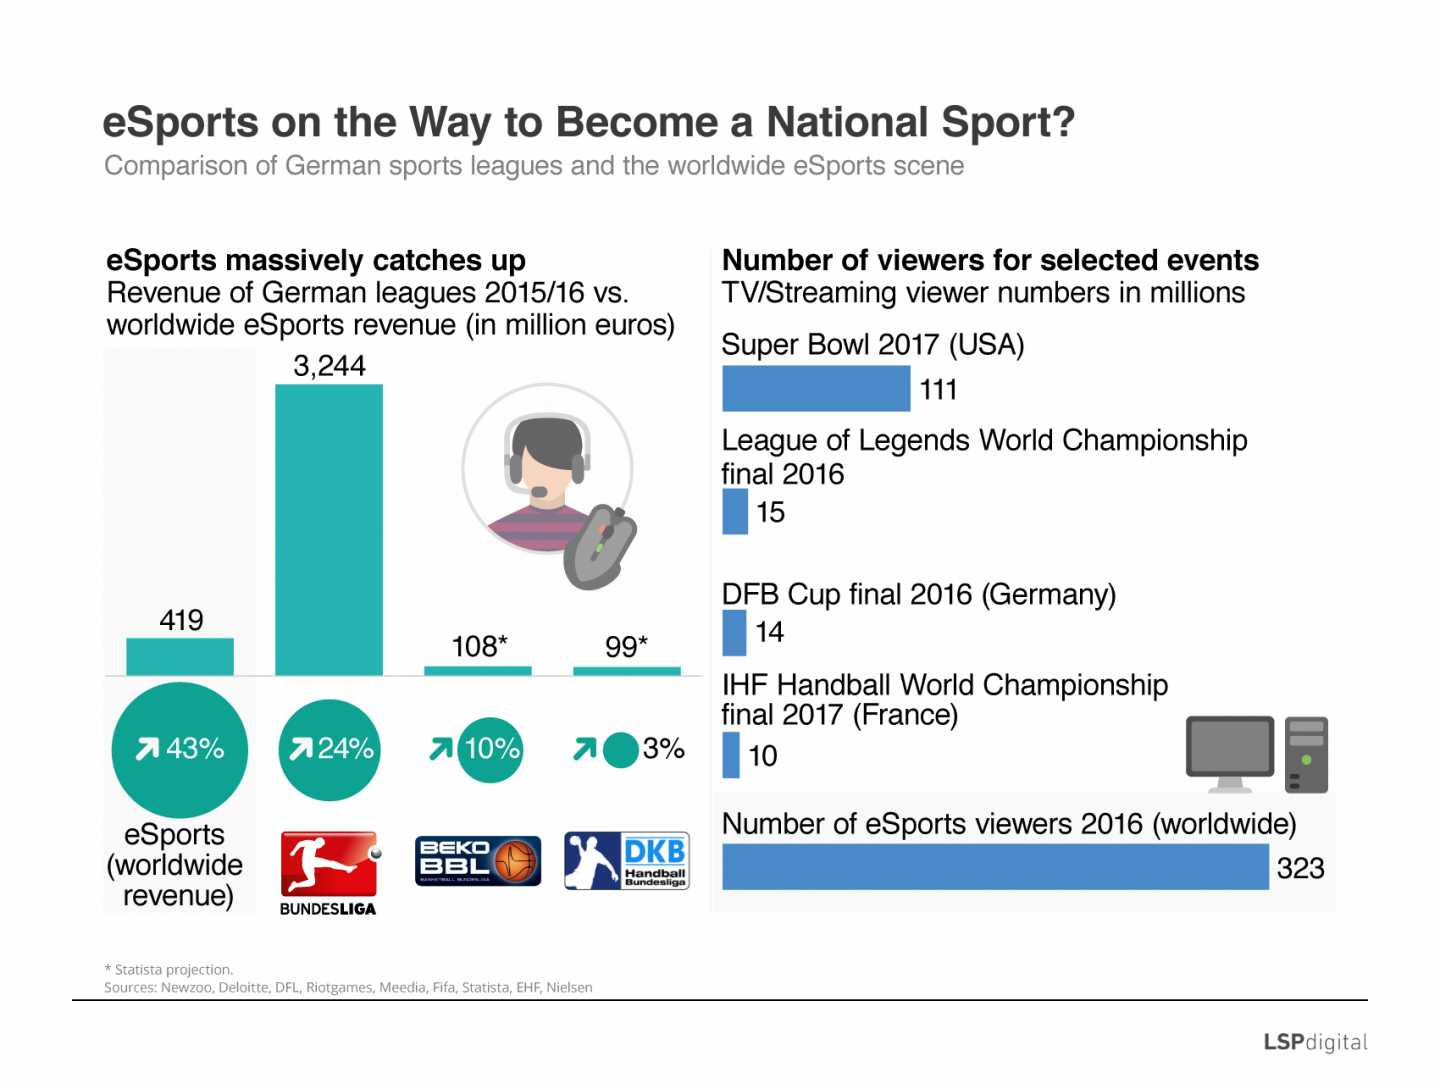 eSports on the Way to Become a National Sport